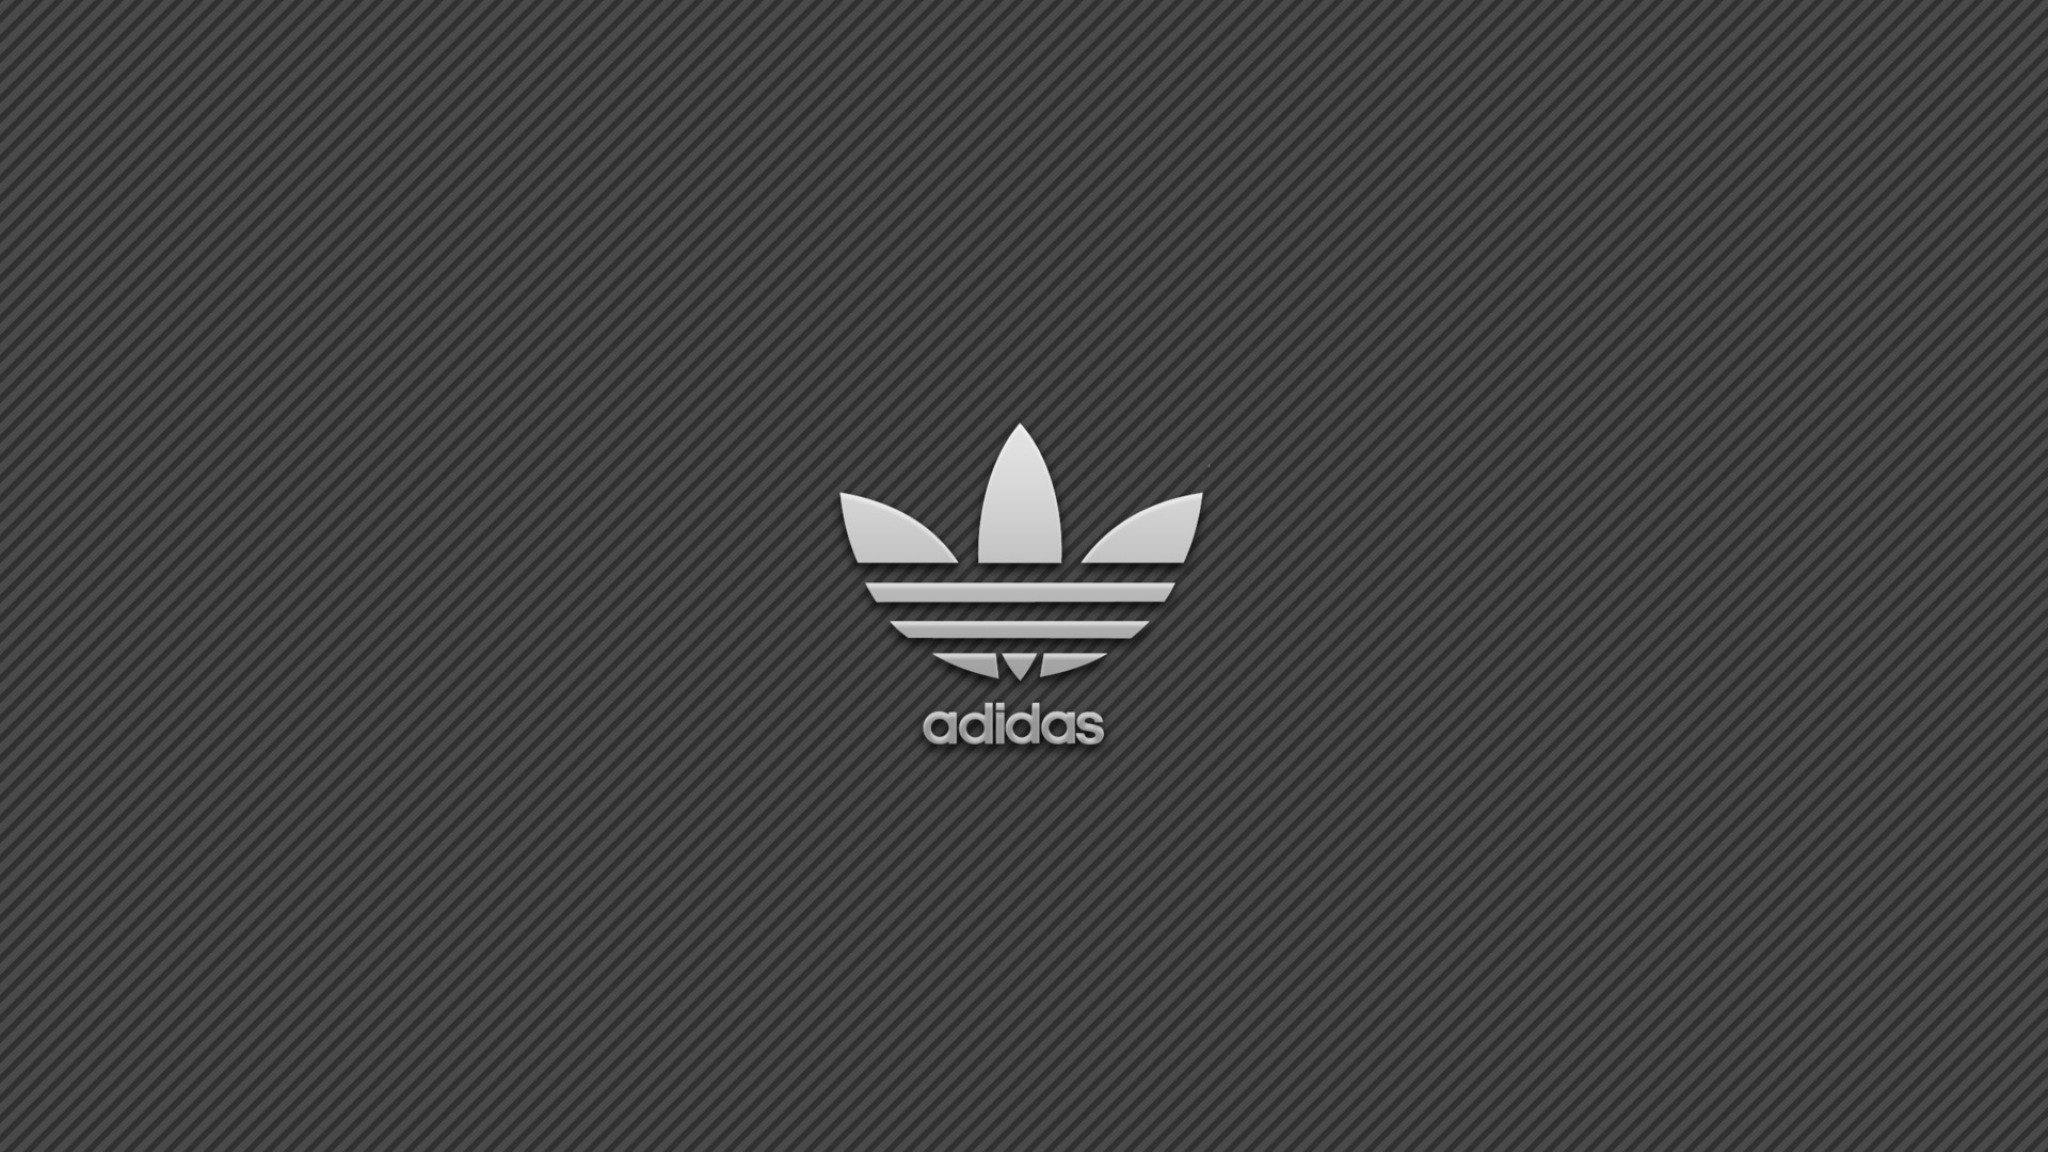 Adidas wallpapers 2018 75 background pictures for Sfondi 2048x1152